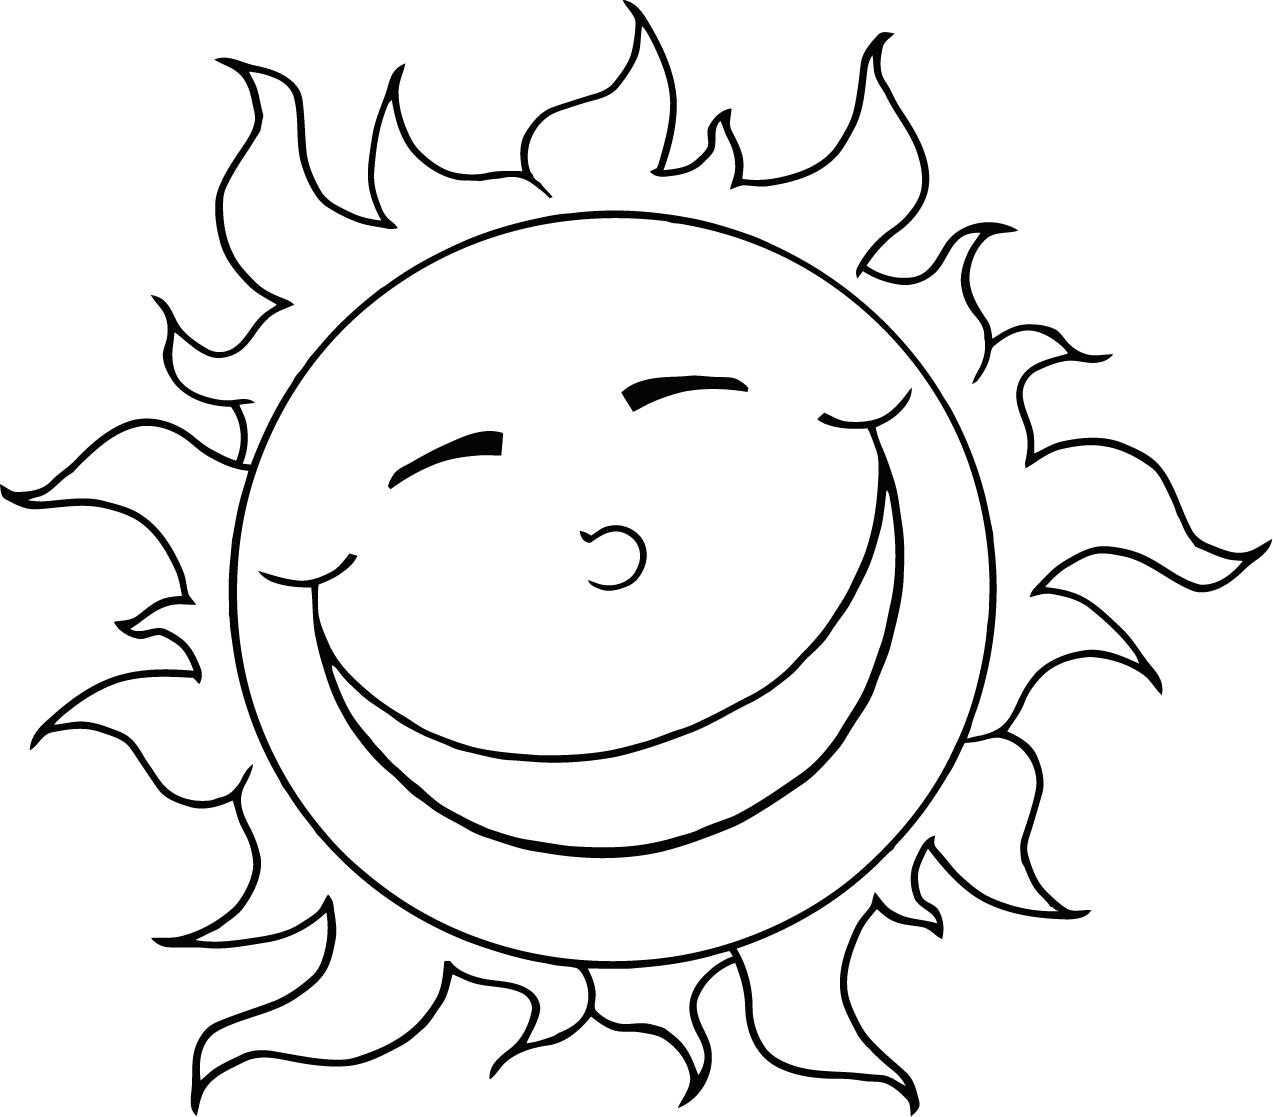 sun-picture-for-kids-coloring